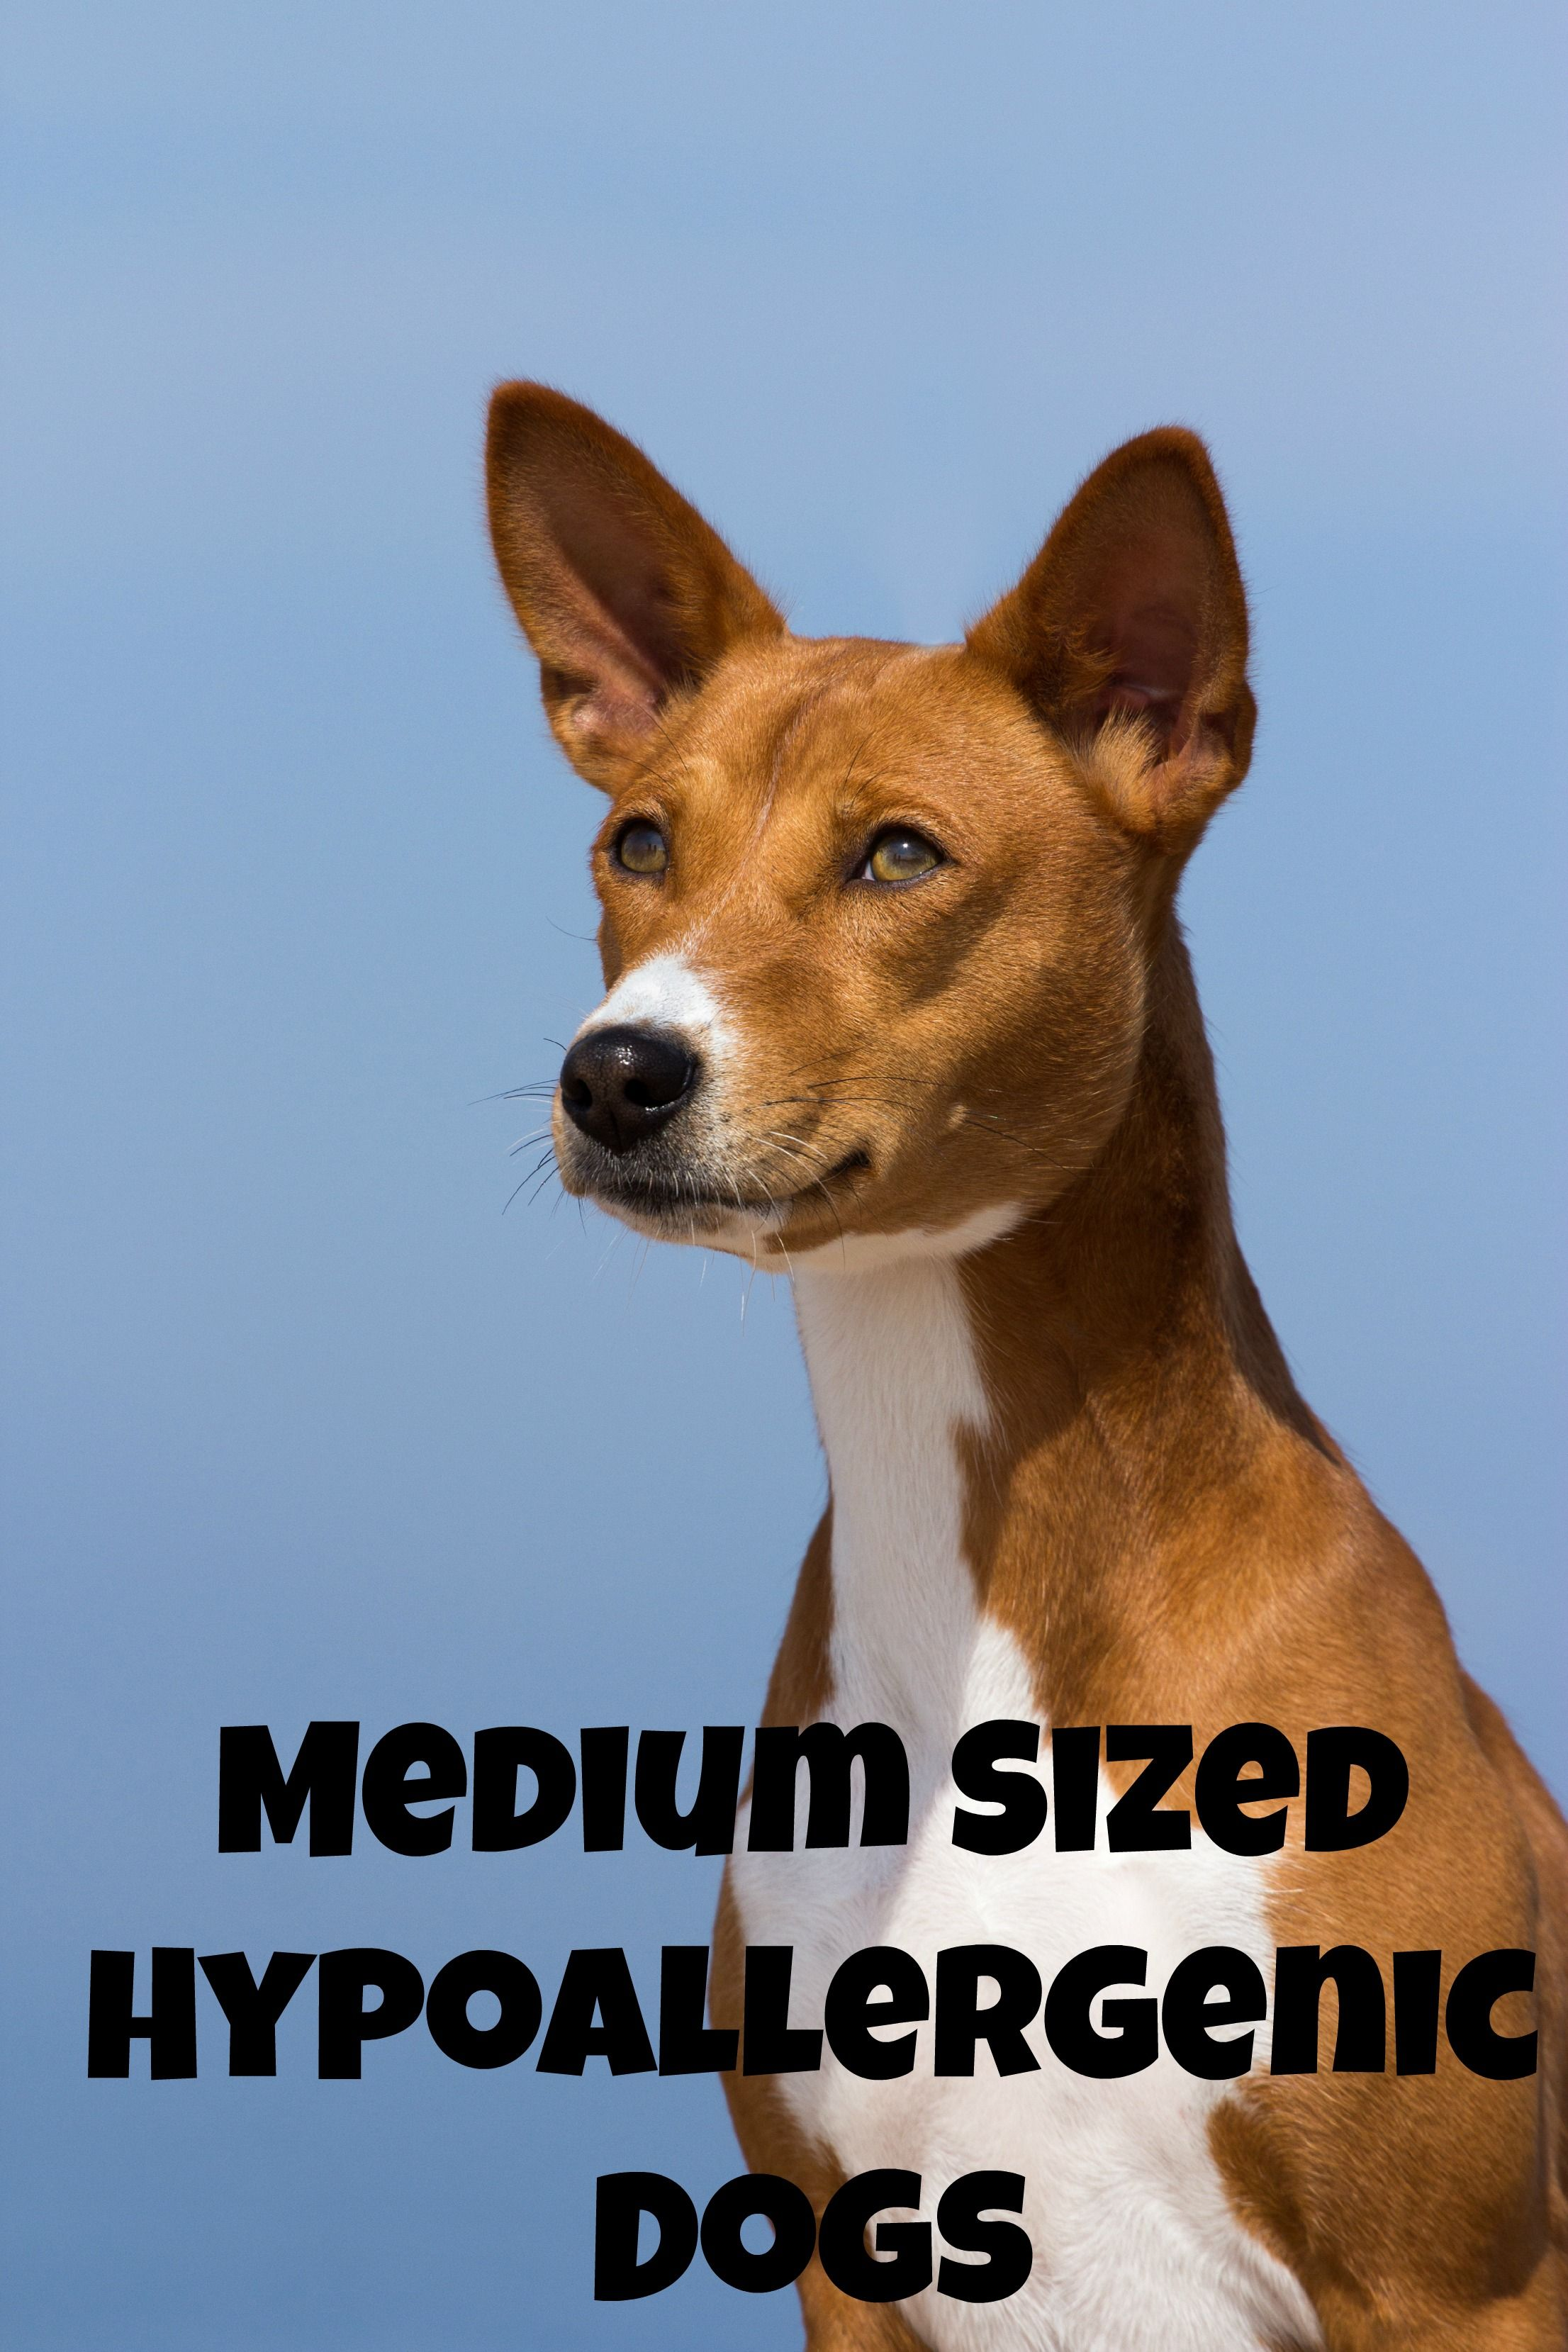 Medium Sized Hypoallergenic Dogs Say you, Locks and